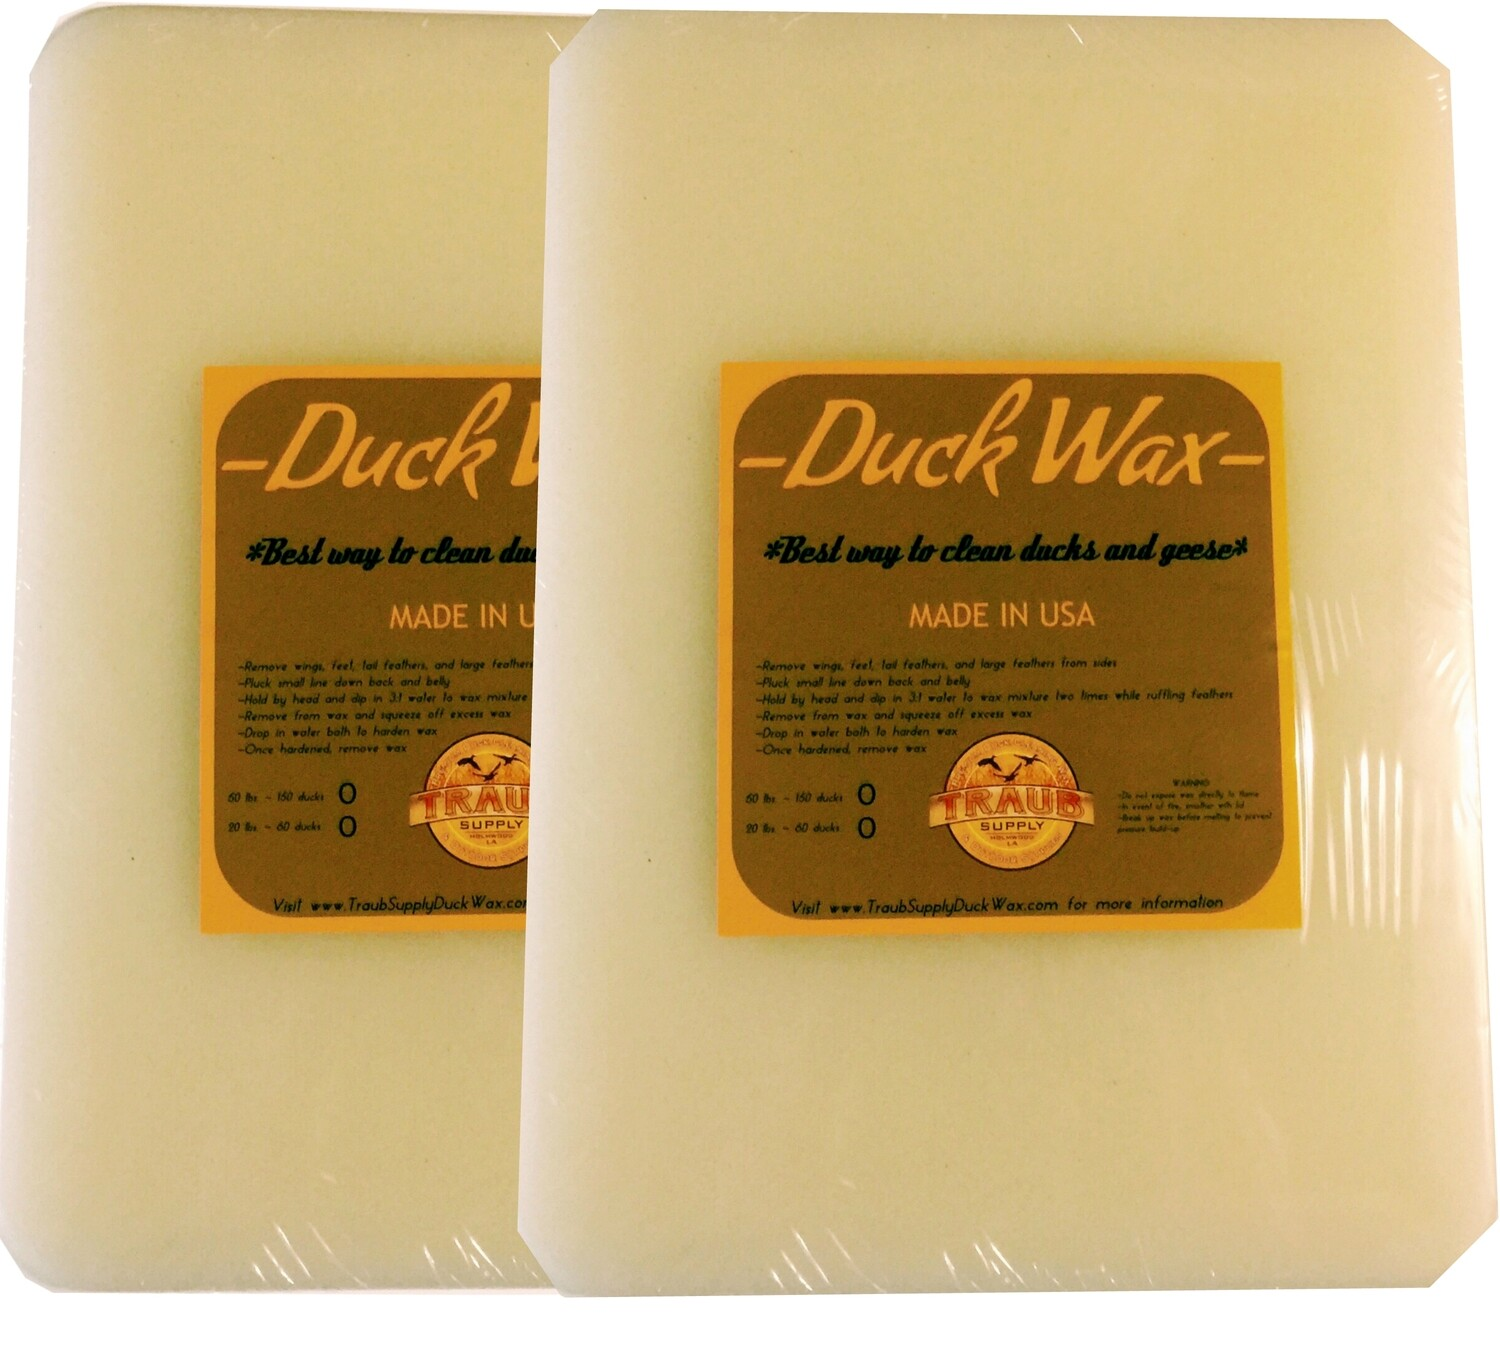 BUY NOW  -   2 slabs 22 lbs. Wild  Duck Wax (CLEANS ABOUT 60 WILD DUCKS) USA ONLY SHIPPING INCLUDED